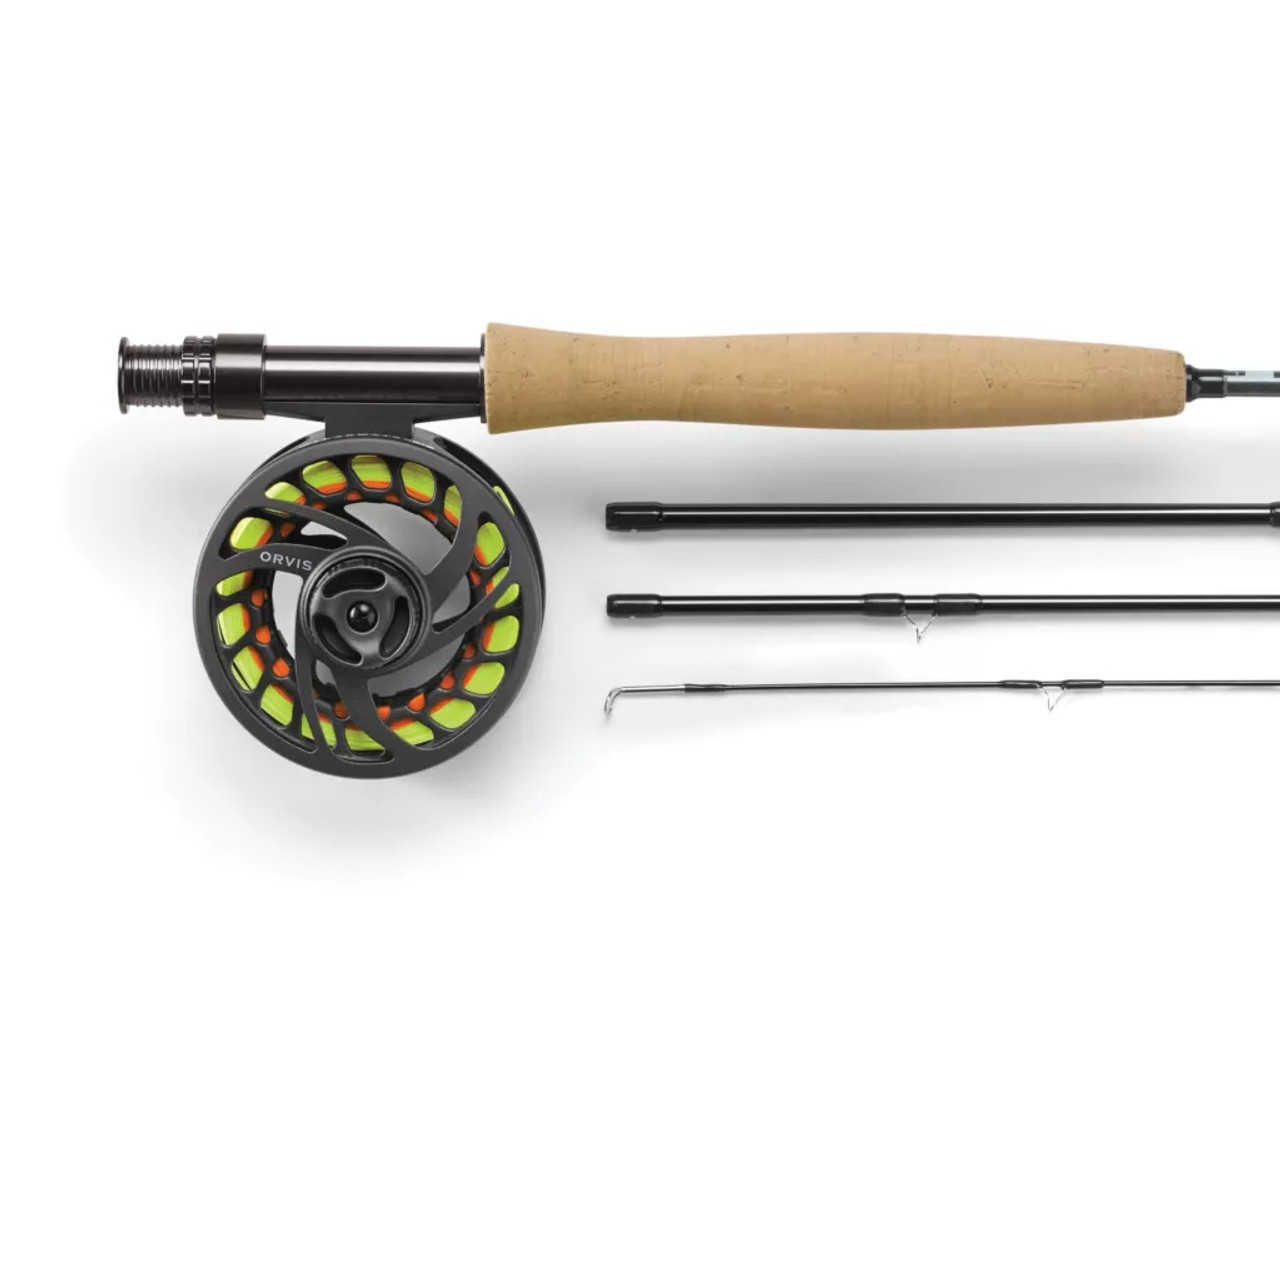 Orvis Clearwater Fly Fishing Rod & Reel Outfit